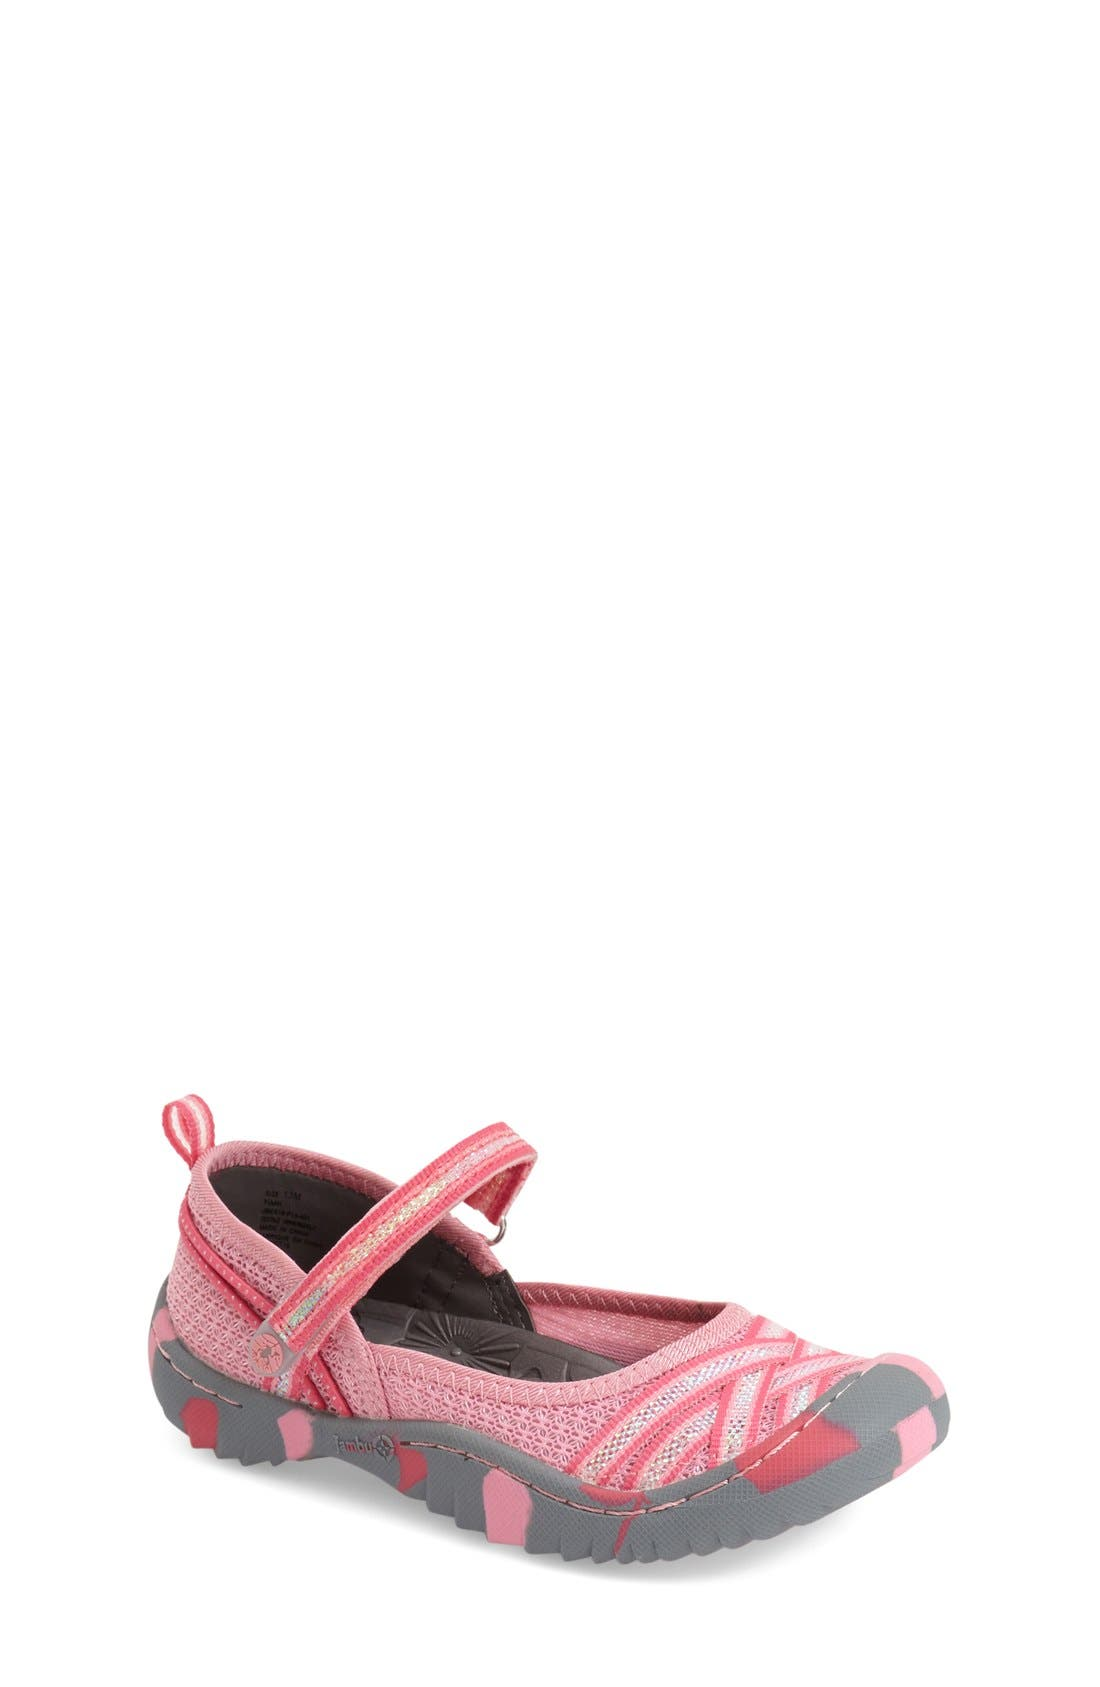 JAMBU 'Fia 4H' Water Repellent Mary Jane Flat